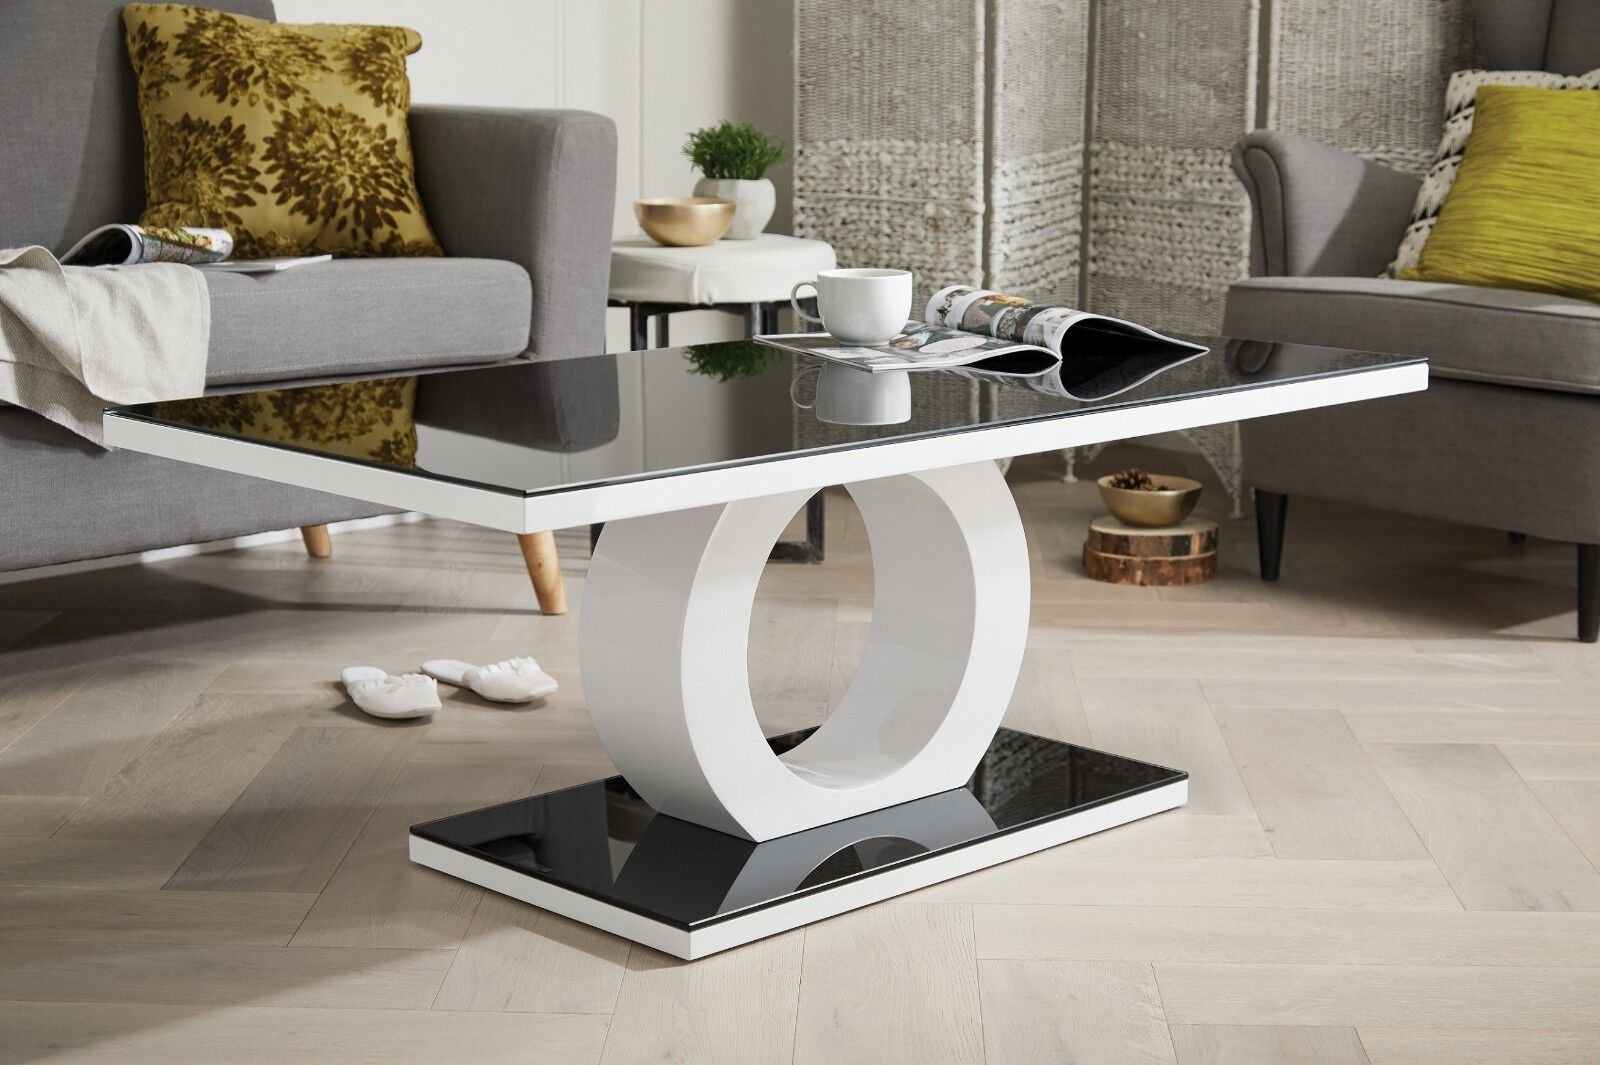 Giovani Designer Halo Black White High Gloss Glass Coffee Table Modern Furniture Ebay